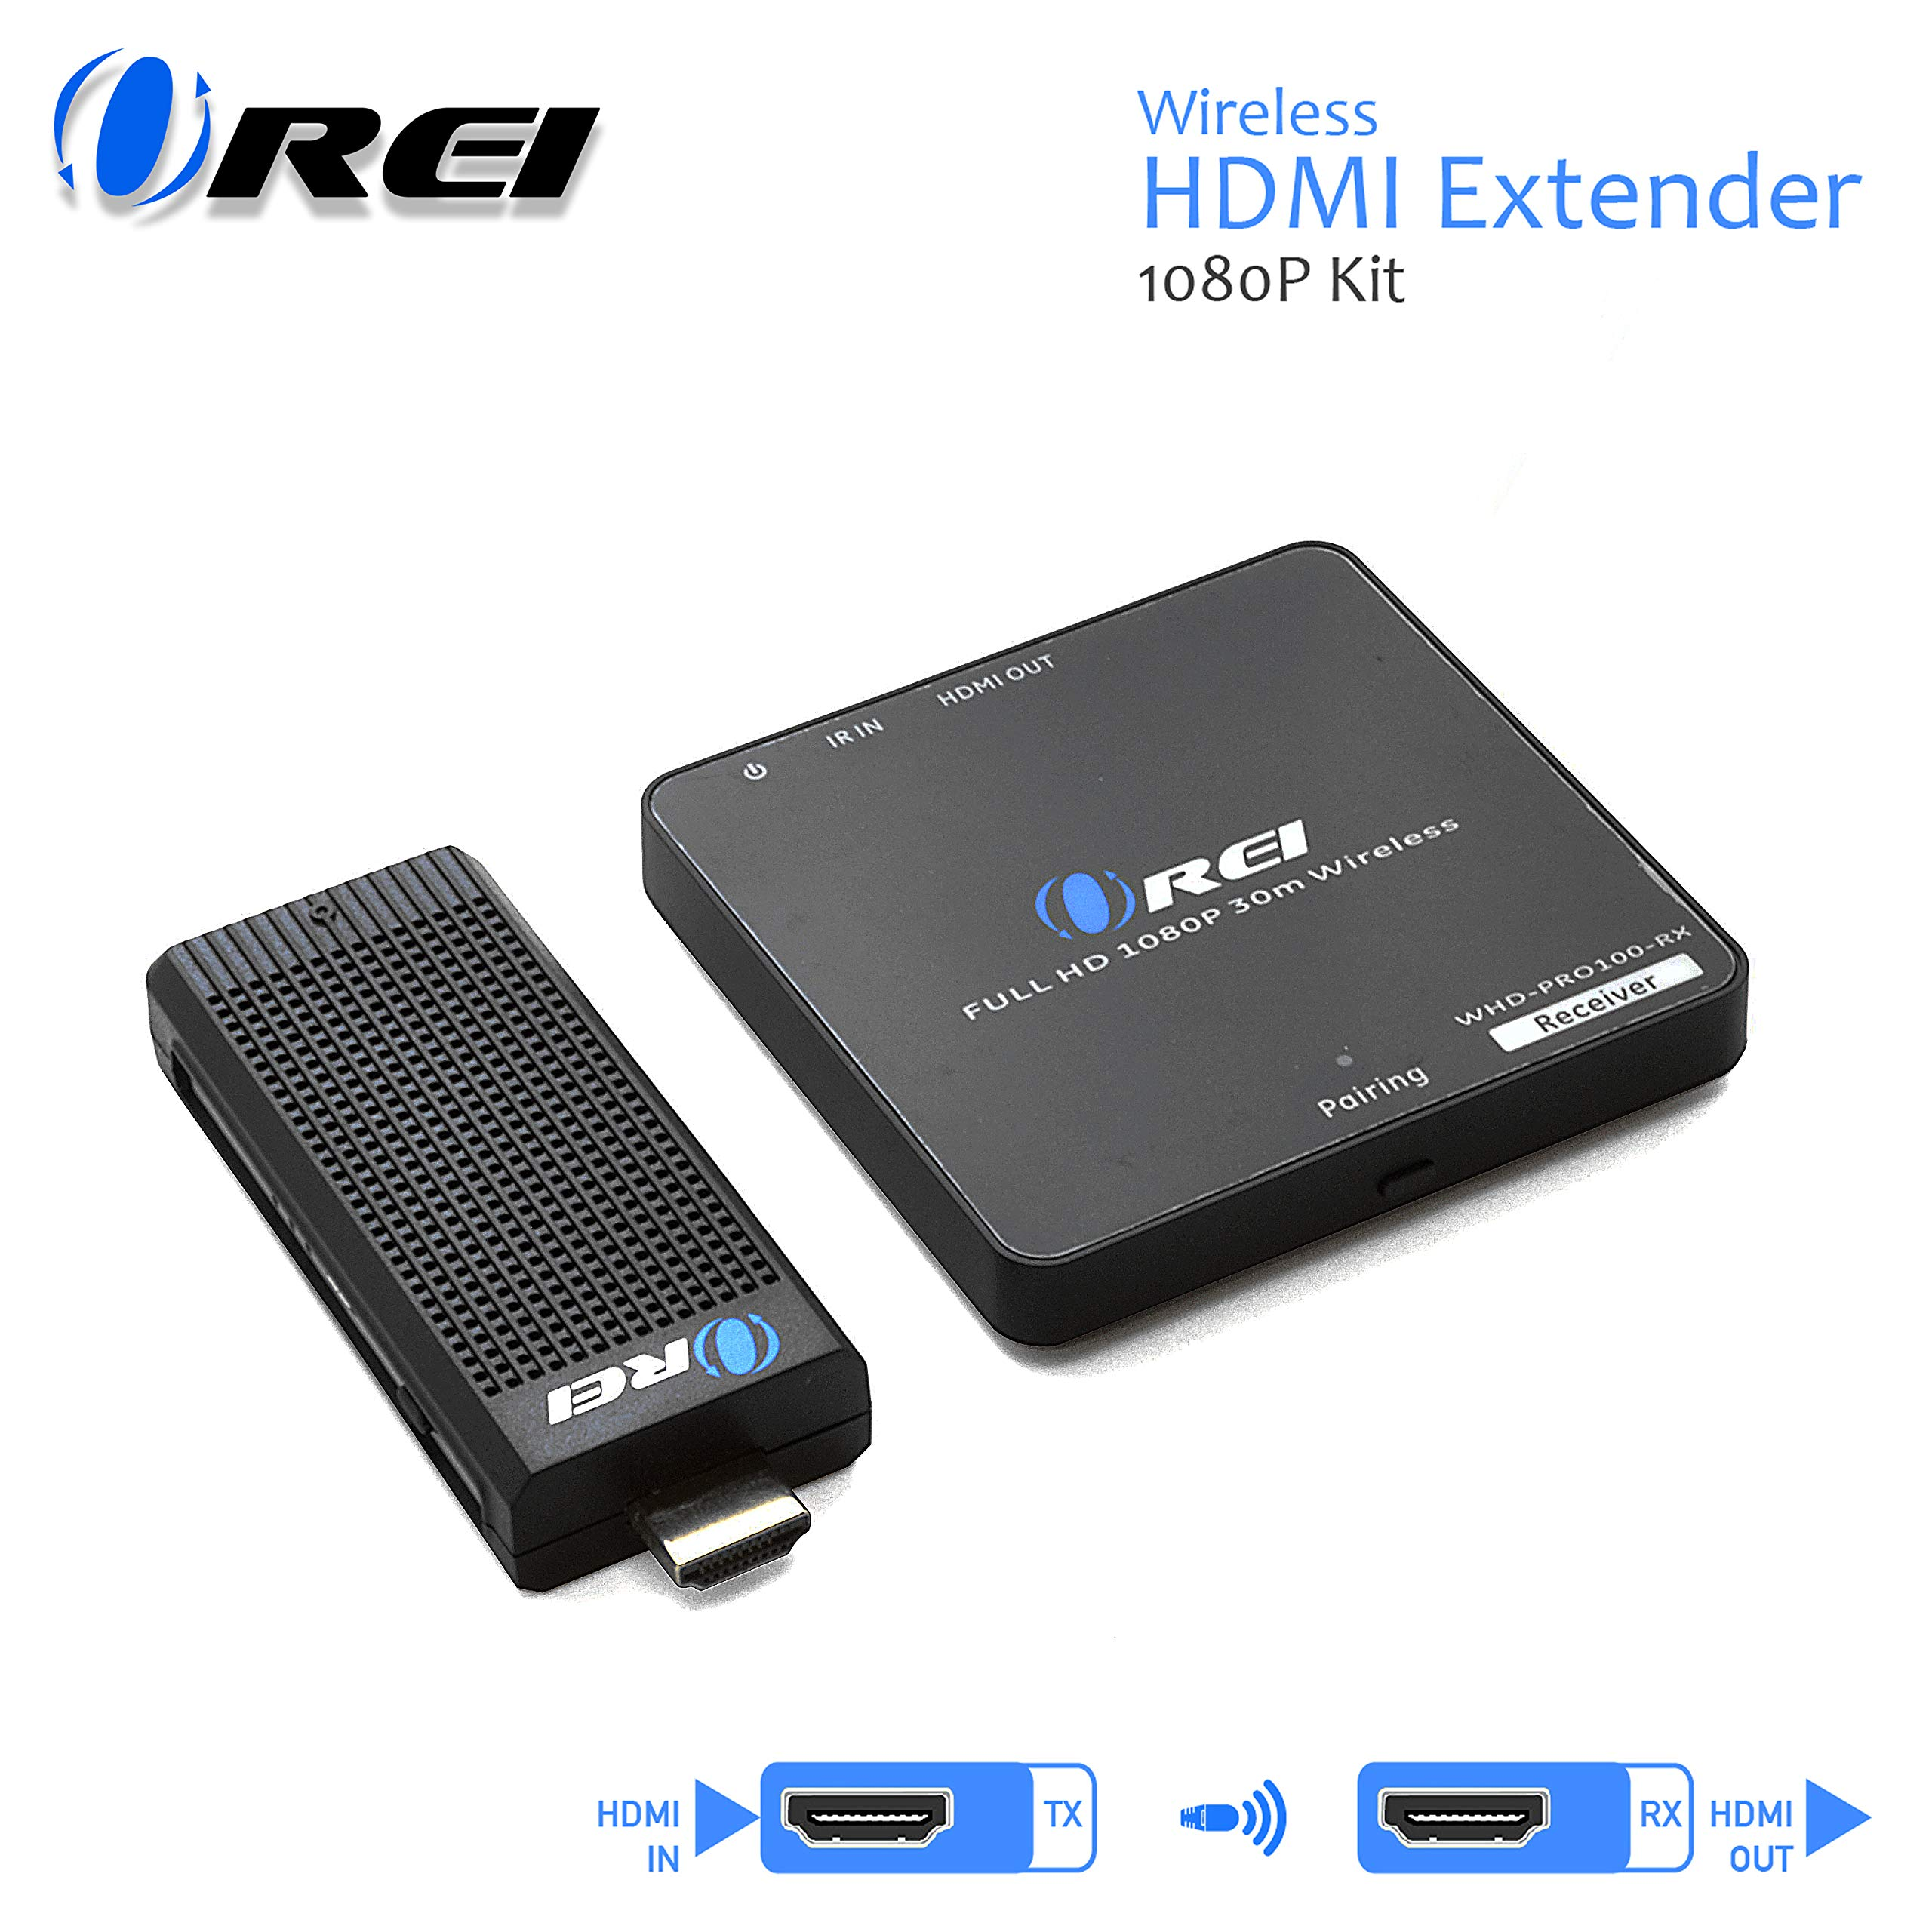 Wireless HDMI Transmitter & Receiver, by OREI - Extender Full HD 1080p Wirelessly Upto 100 Ft with Dongle - Perfect for Streaming, Laptops, PC, Media and More by Orei (Image #1)